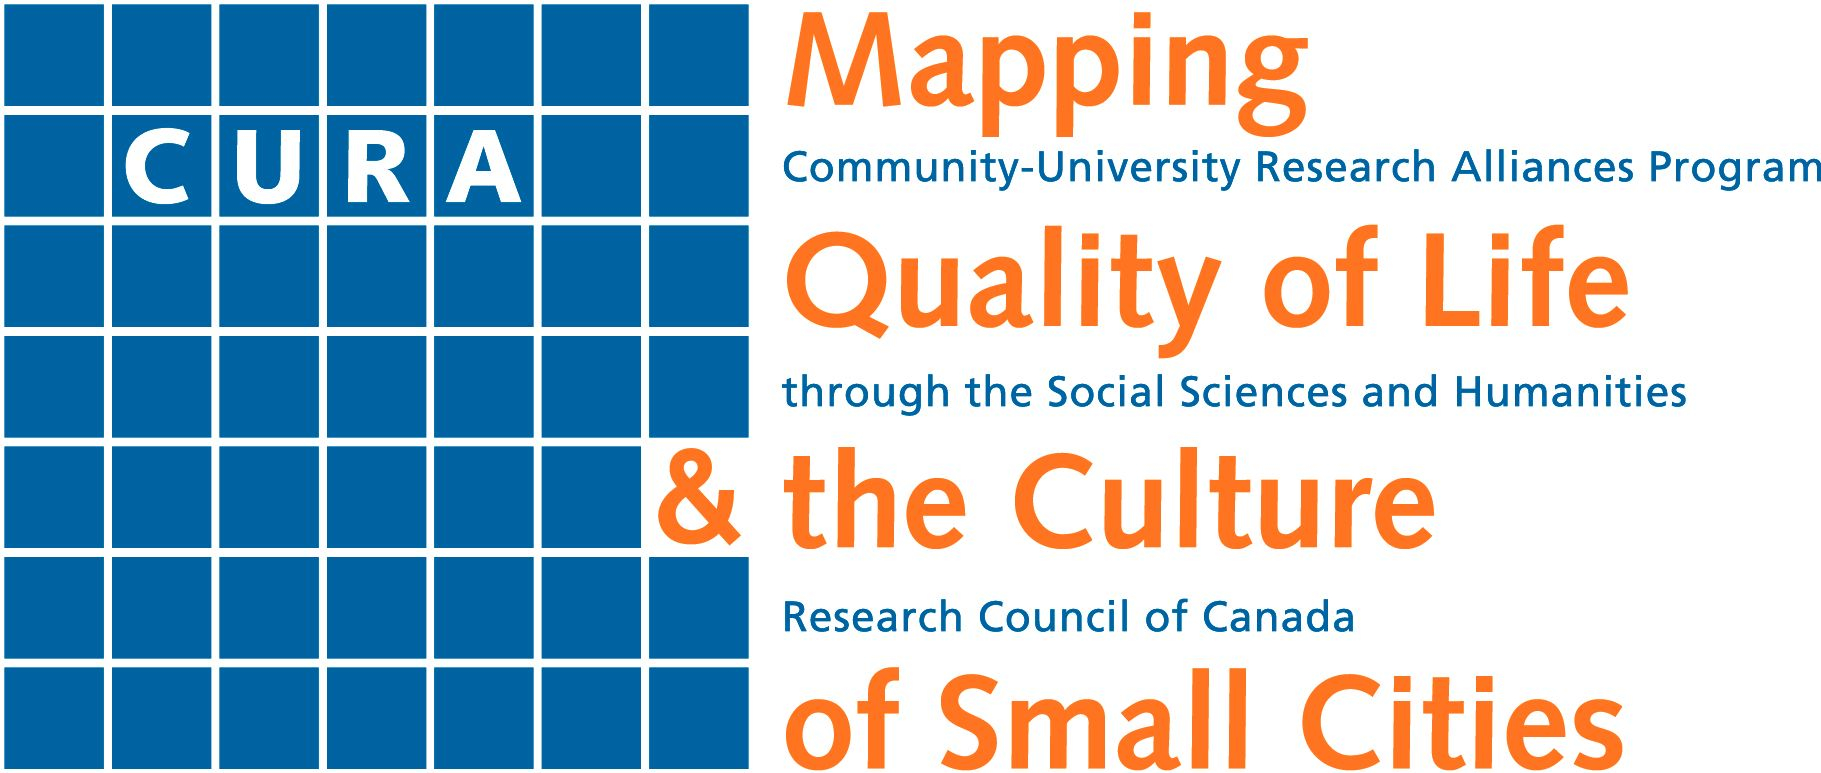 CURA: Mapping Quality of Life & the Culture of Small Cities